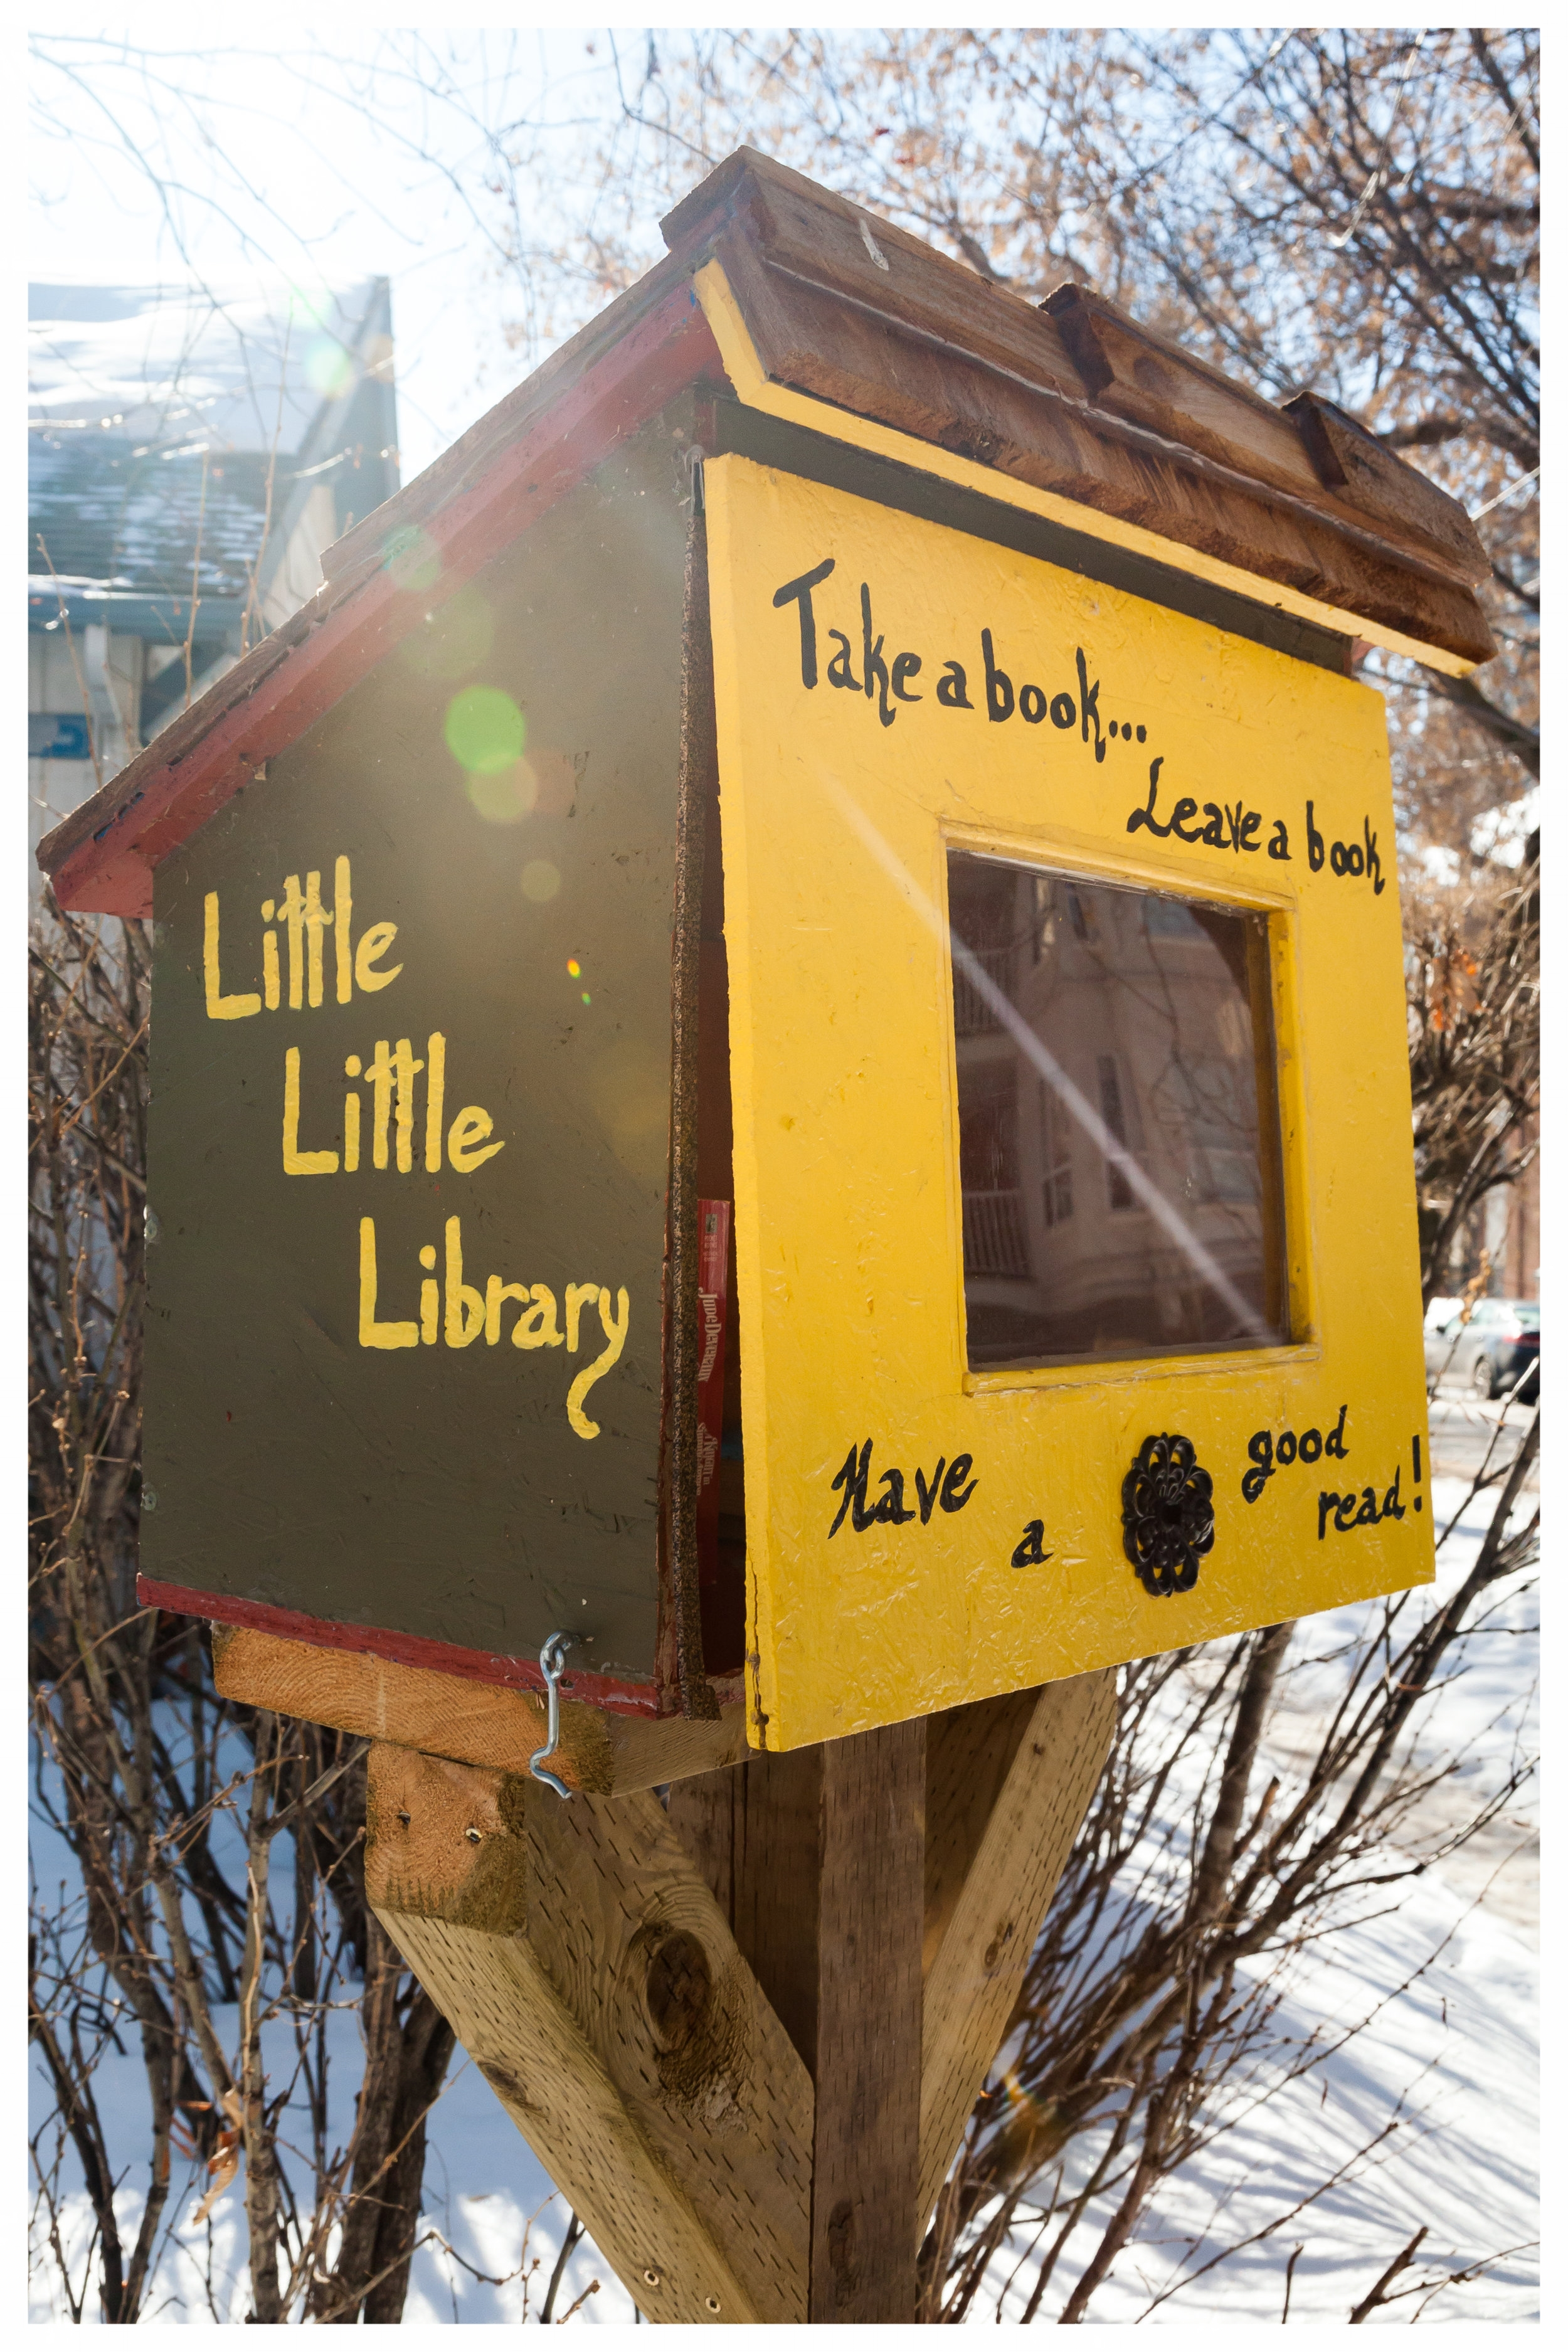 The Little Little Library on 110th Street and 86th Ave.